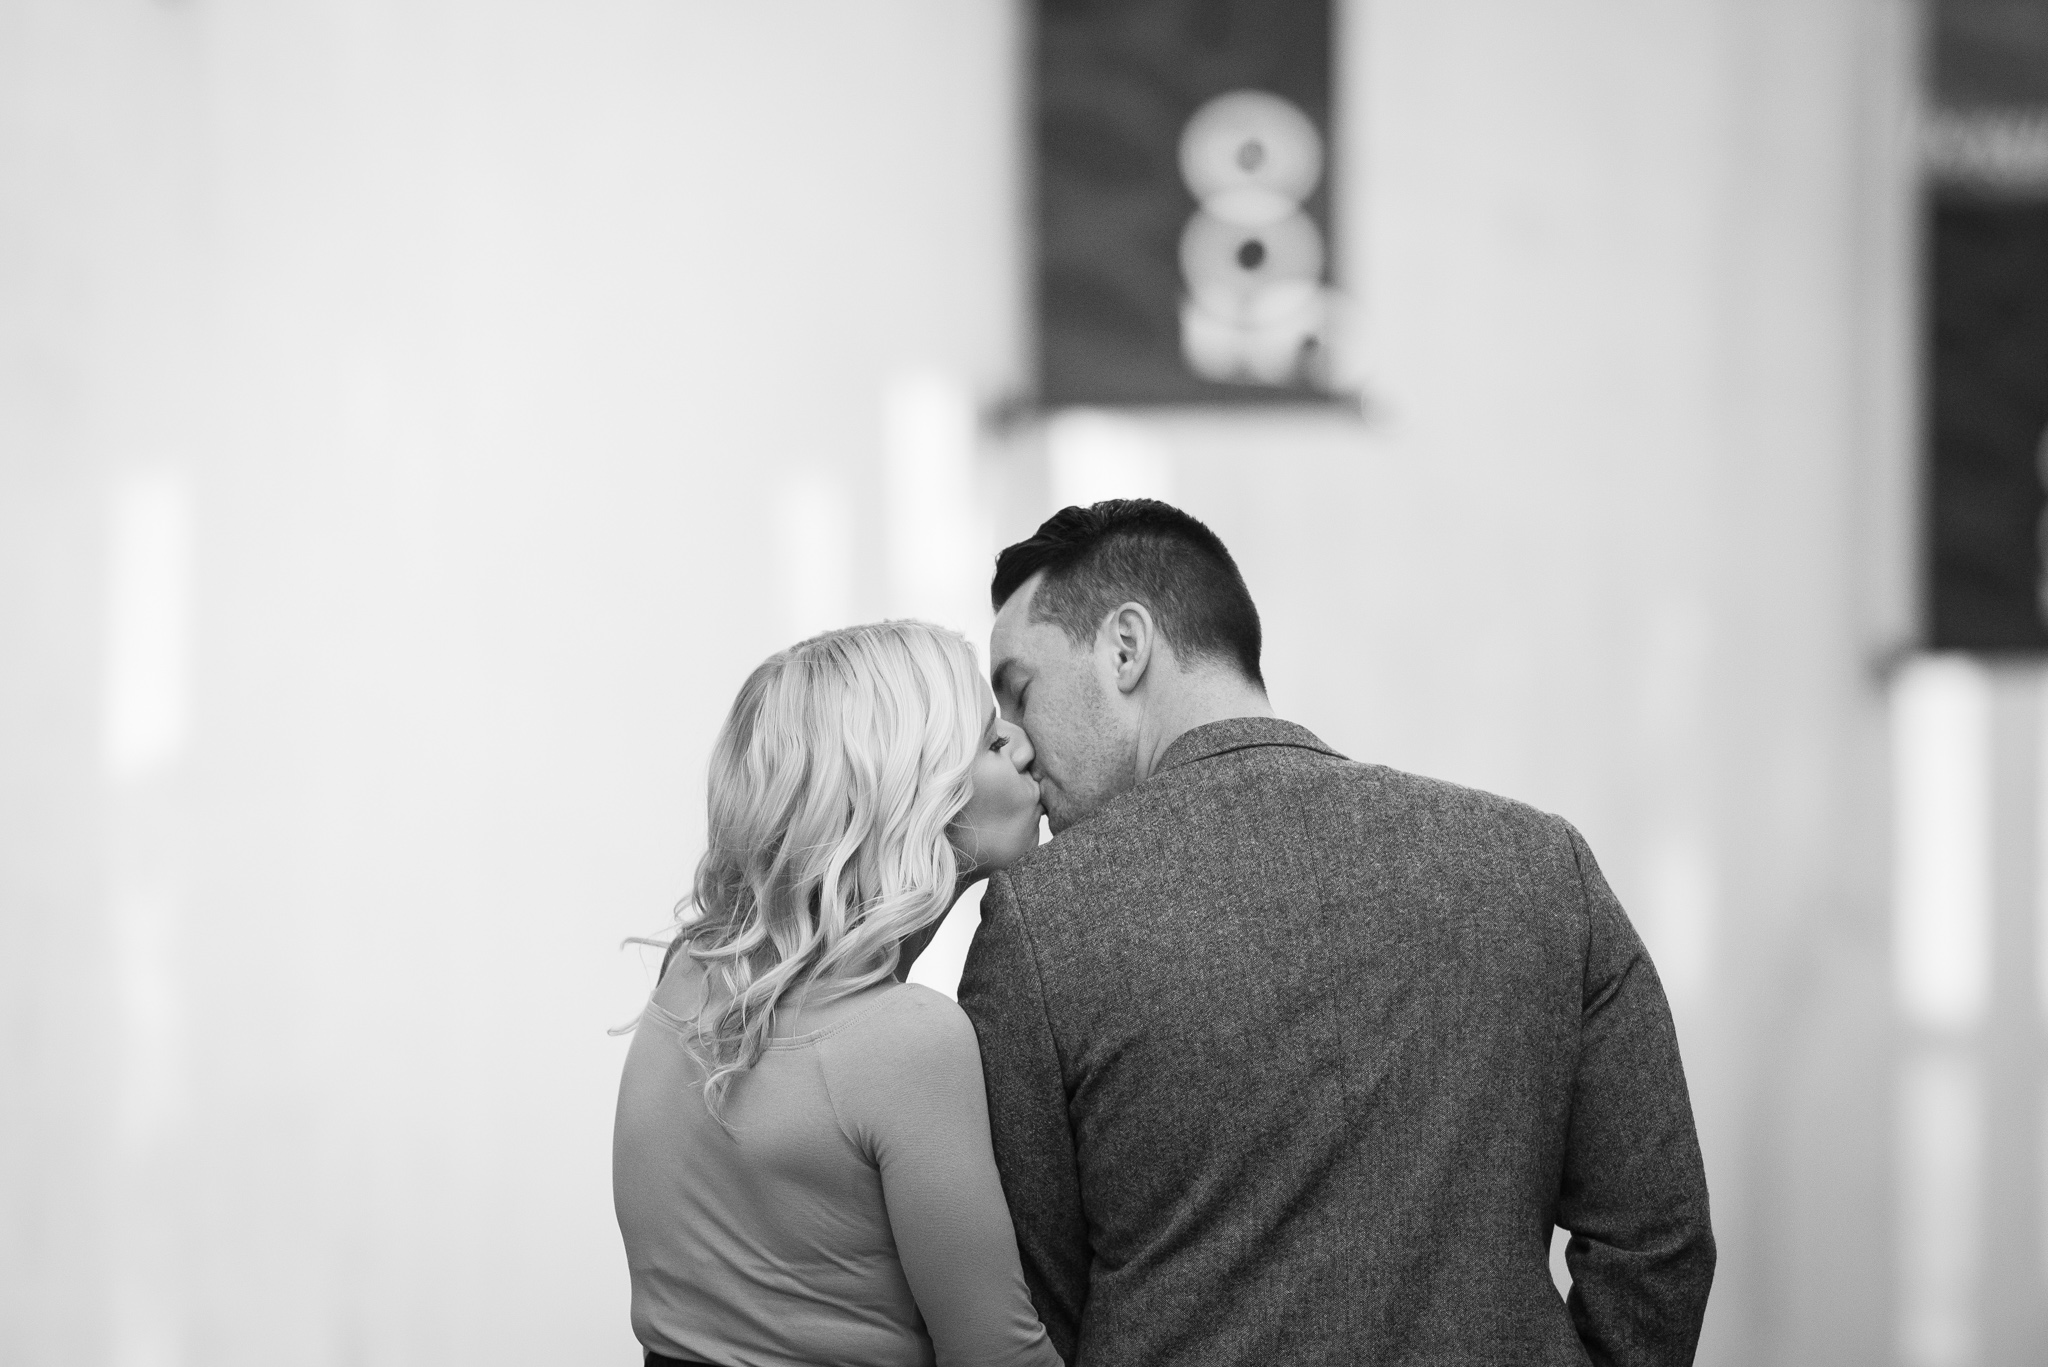 Mindy-Engagement-photography-wedding-photographer-northeast-PA-Scranton-Poconos-19.jpg